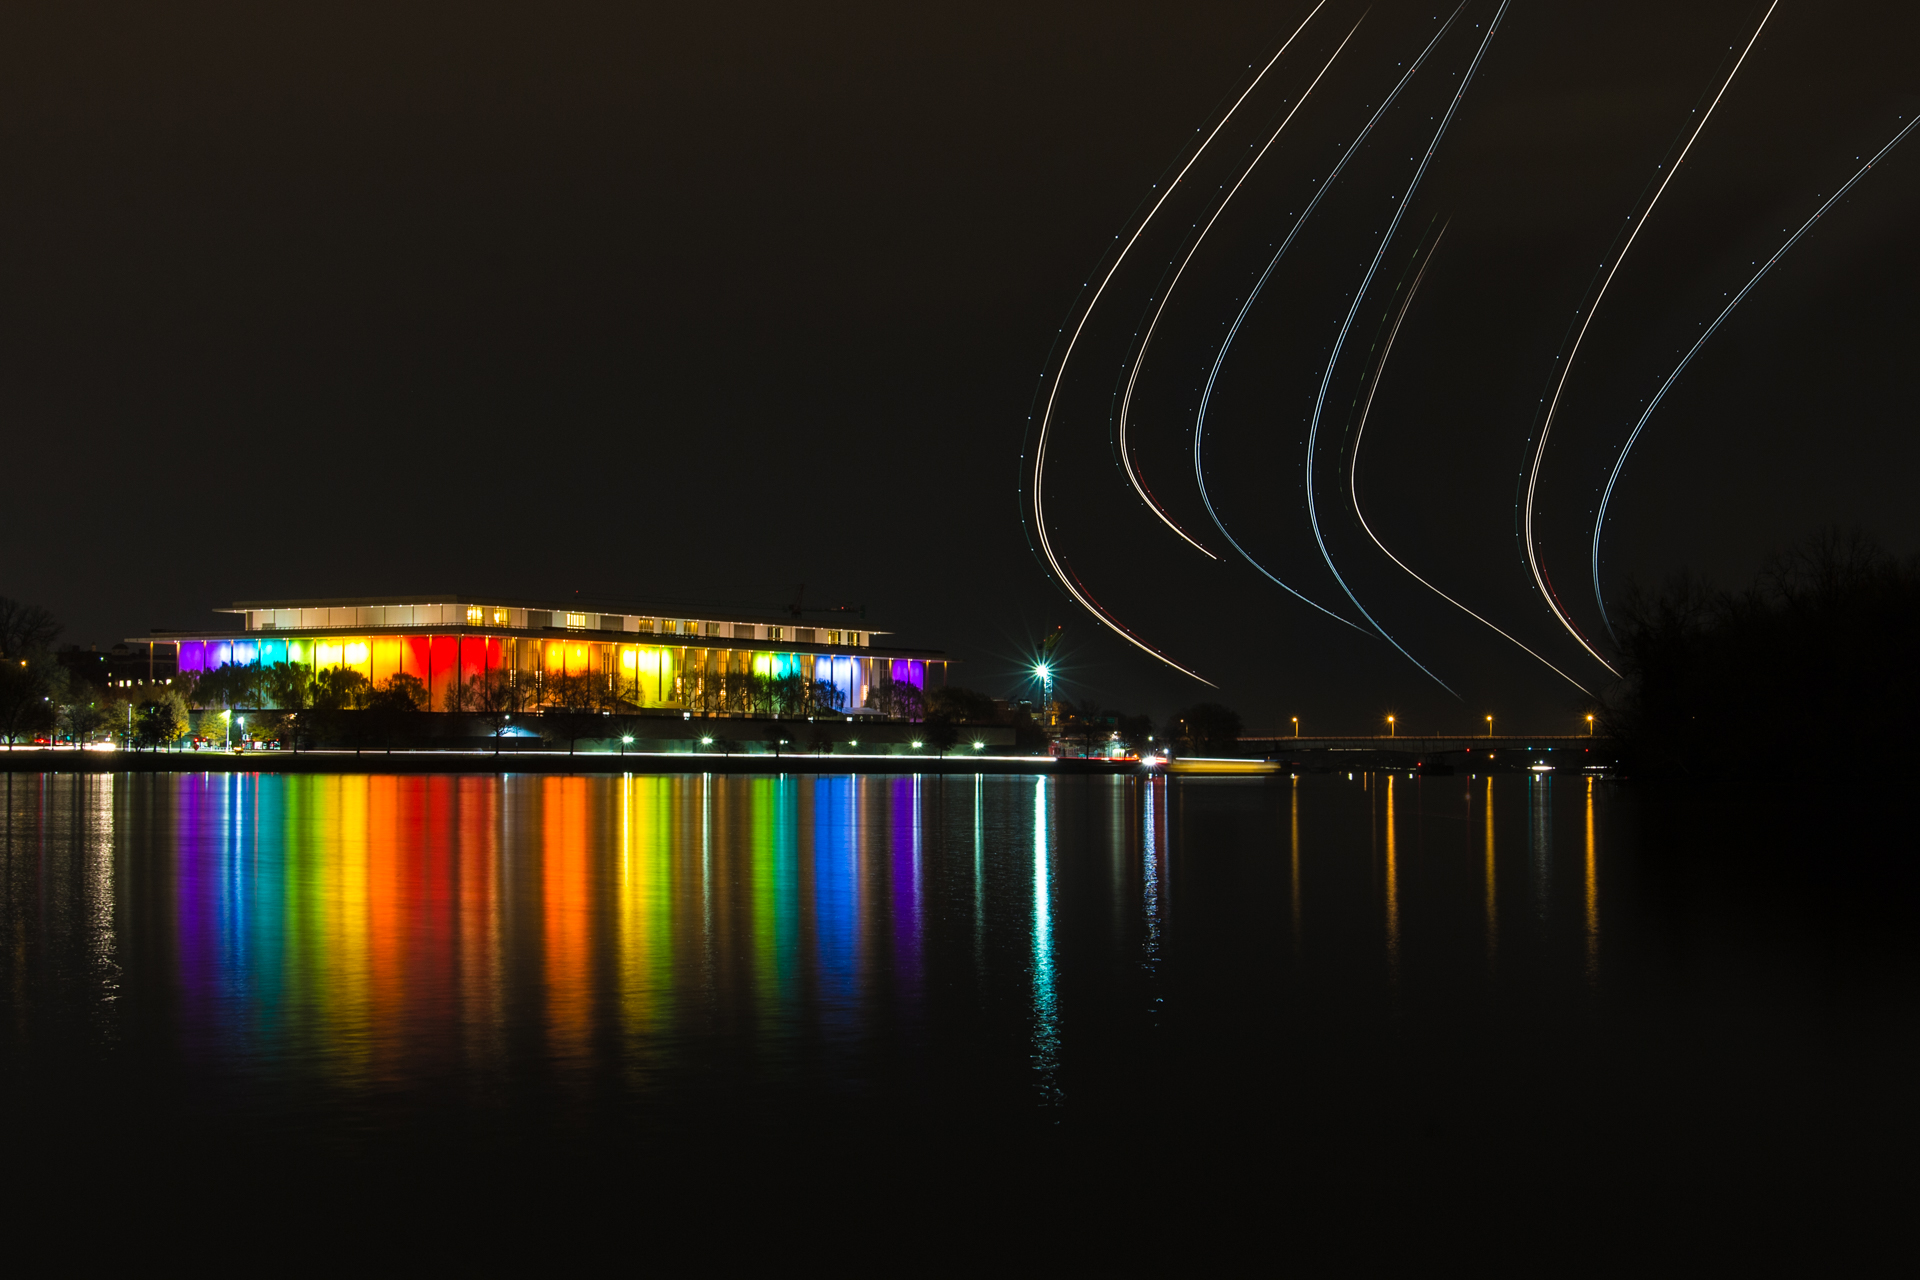 In the Rainbow of Honor – Kennedy Center lit up like a rainbow for the honors celebration{&amp;nbsp;}(Image: Zack Lewkowicz)<p></p>